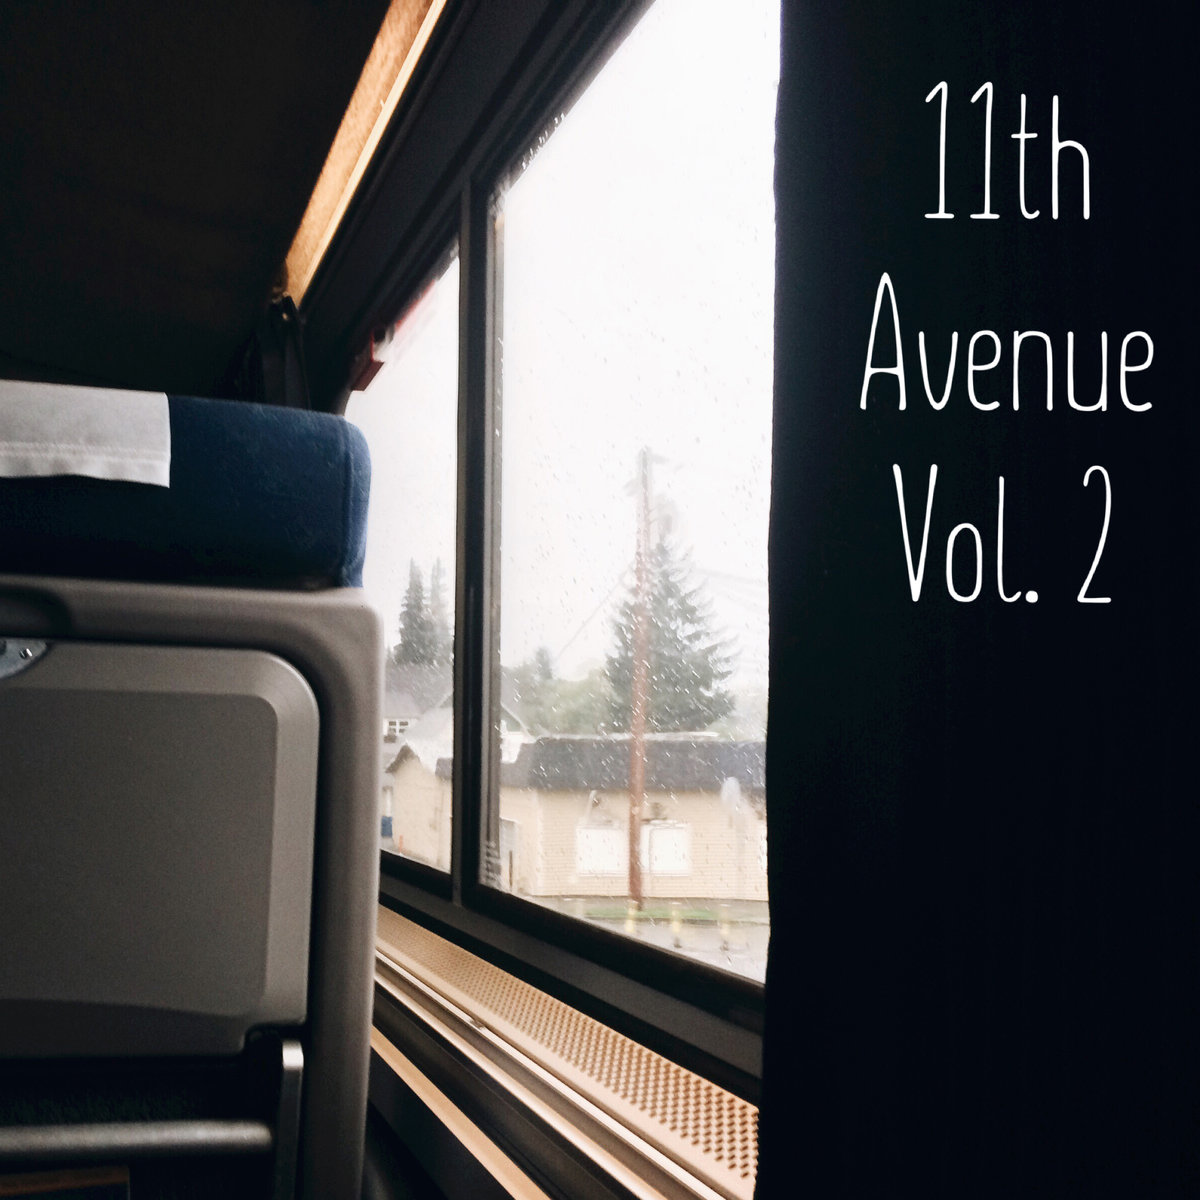 Joel Taylor - Surf Hotel @ '11th Avenue Vol. 2' album (11th ave records, 11thaverecords 11th avenue)